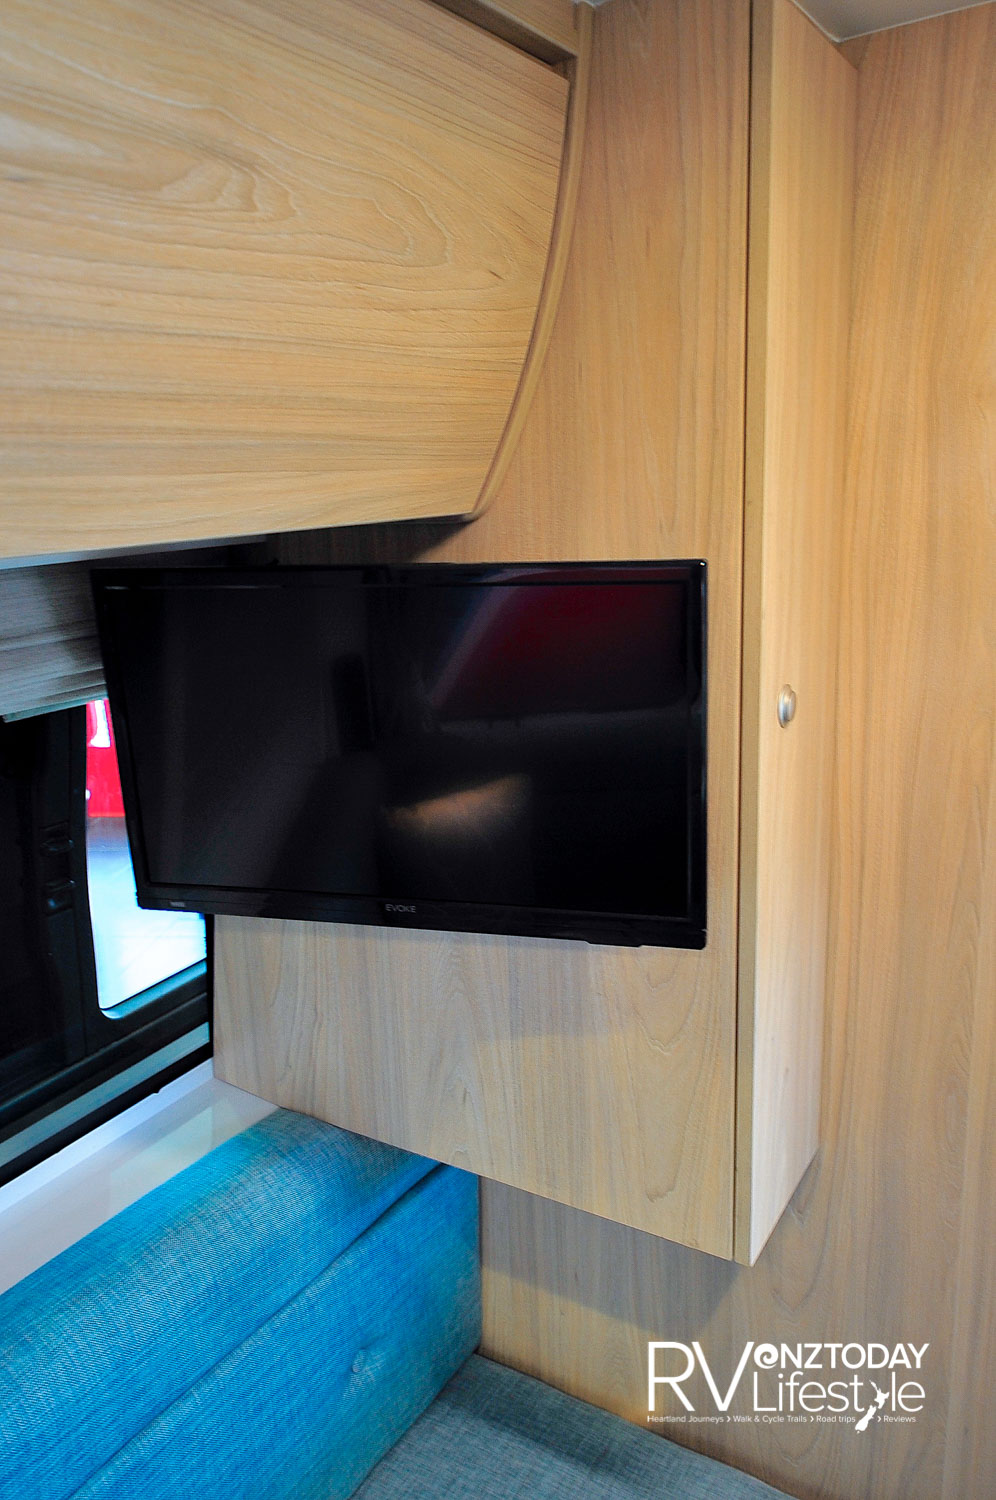 The 19″ Evoke TV is fixed to the cupboard wall on an adjustable arm for viewing